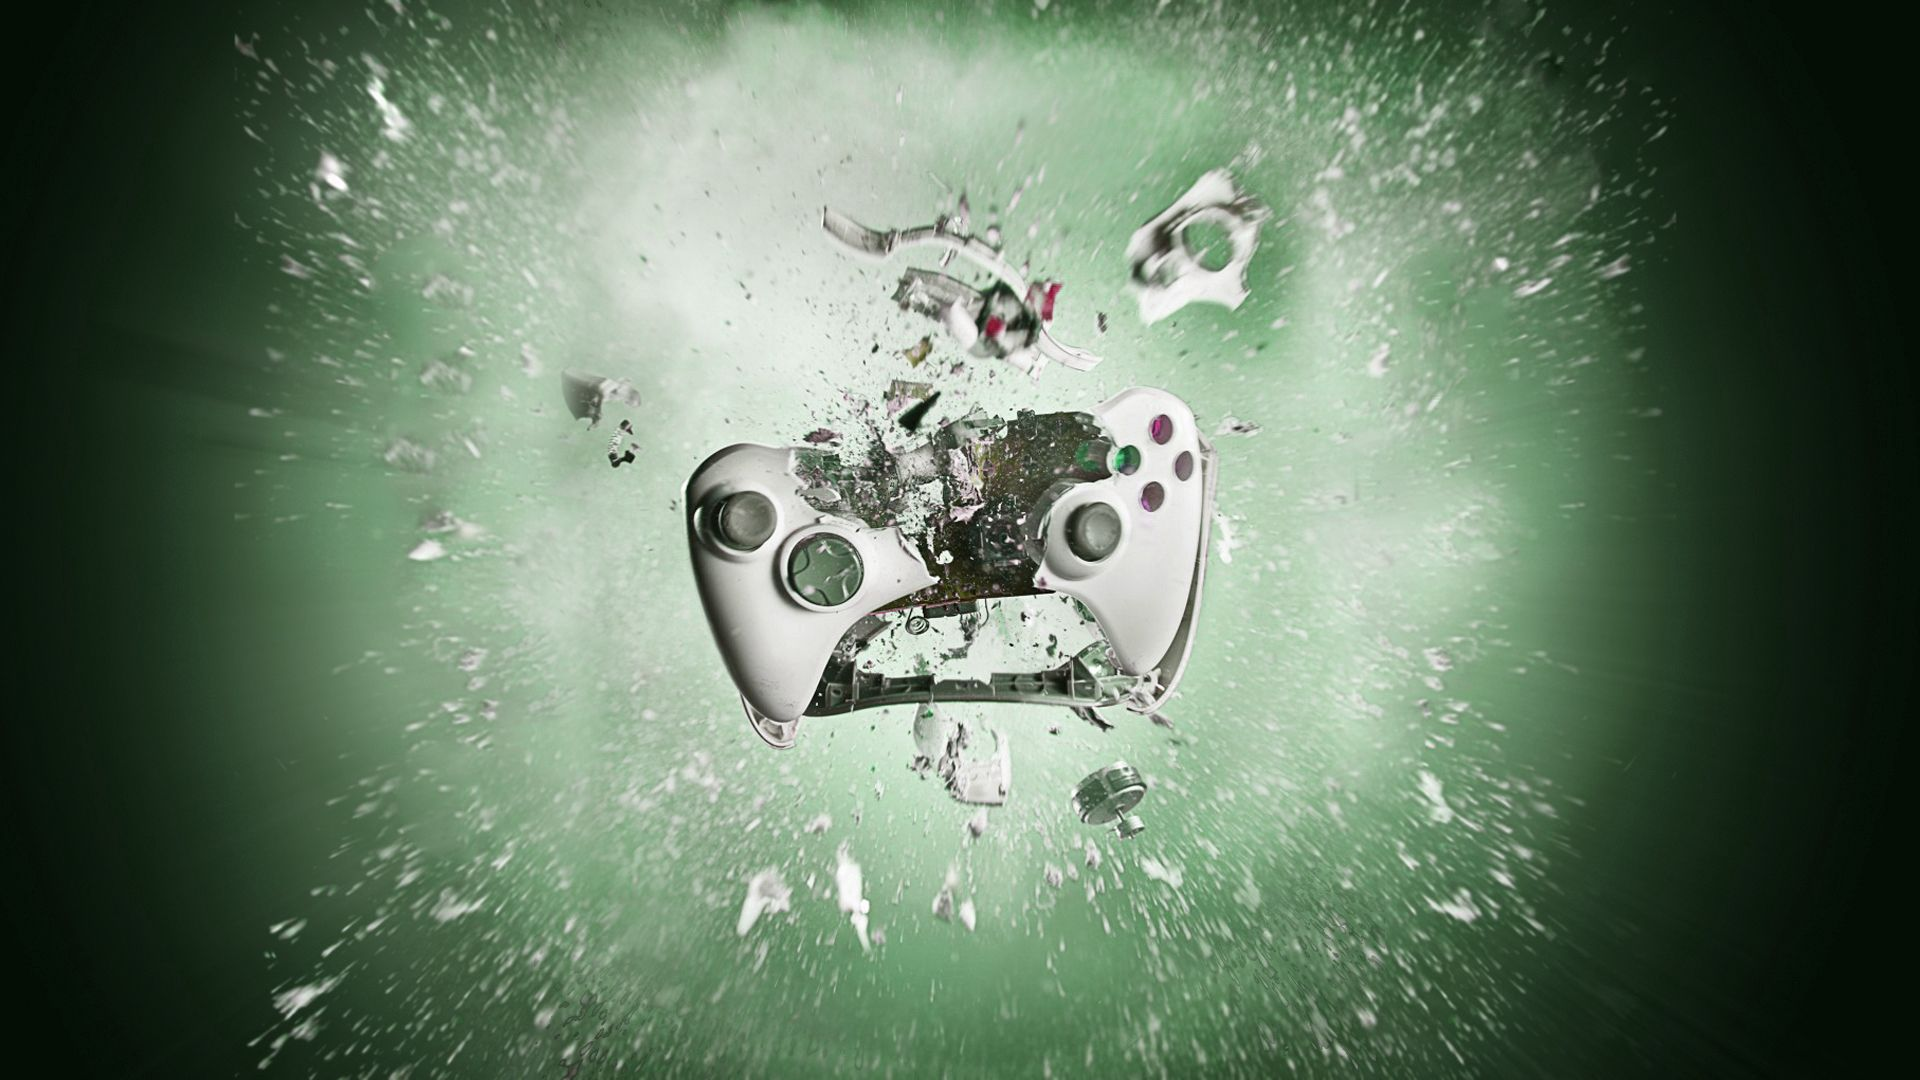 Pin By Ilikewallpaper Ios Wallpaper On Ipad Wallpapers: Best Gaming Wallpapers X PC And Ipad Desktop Hd